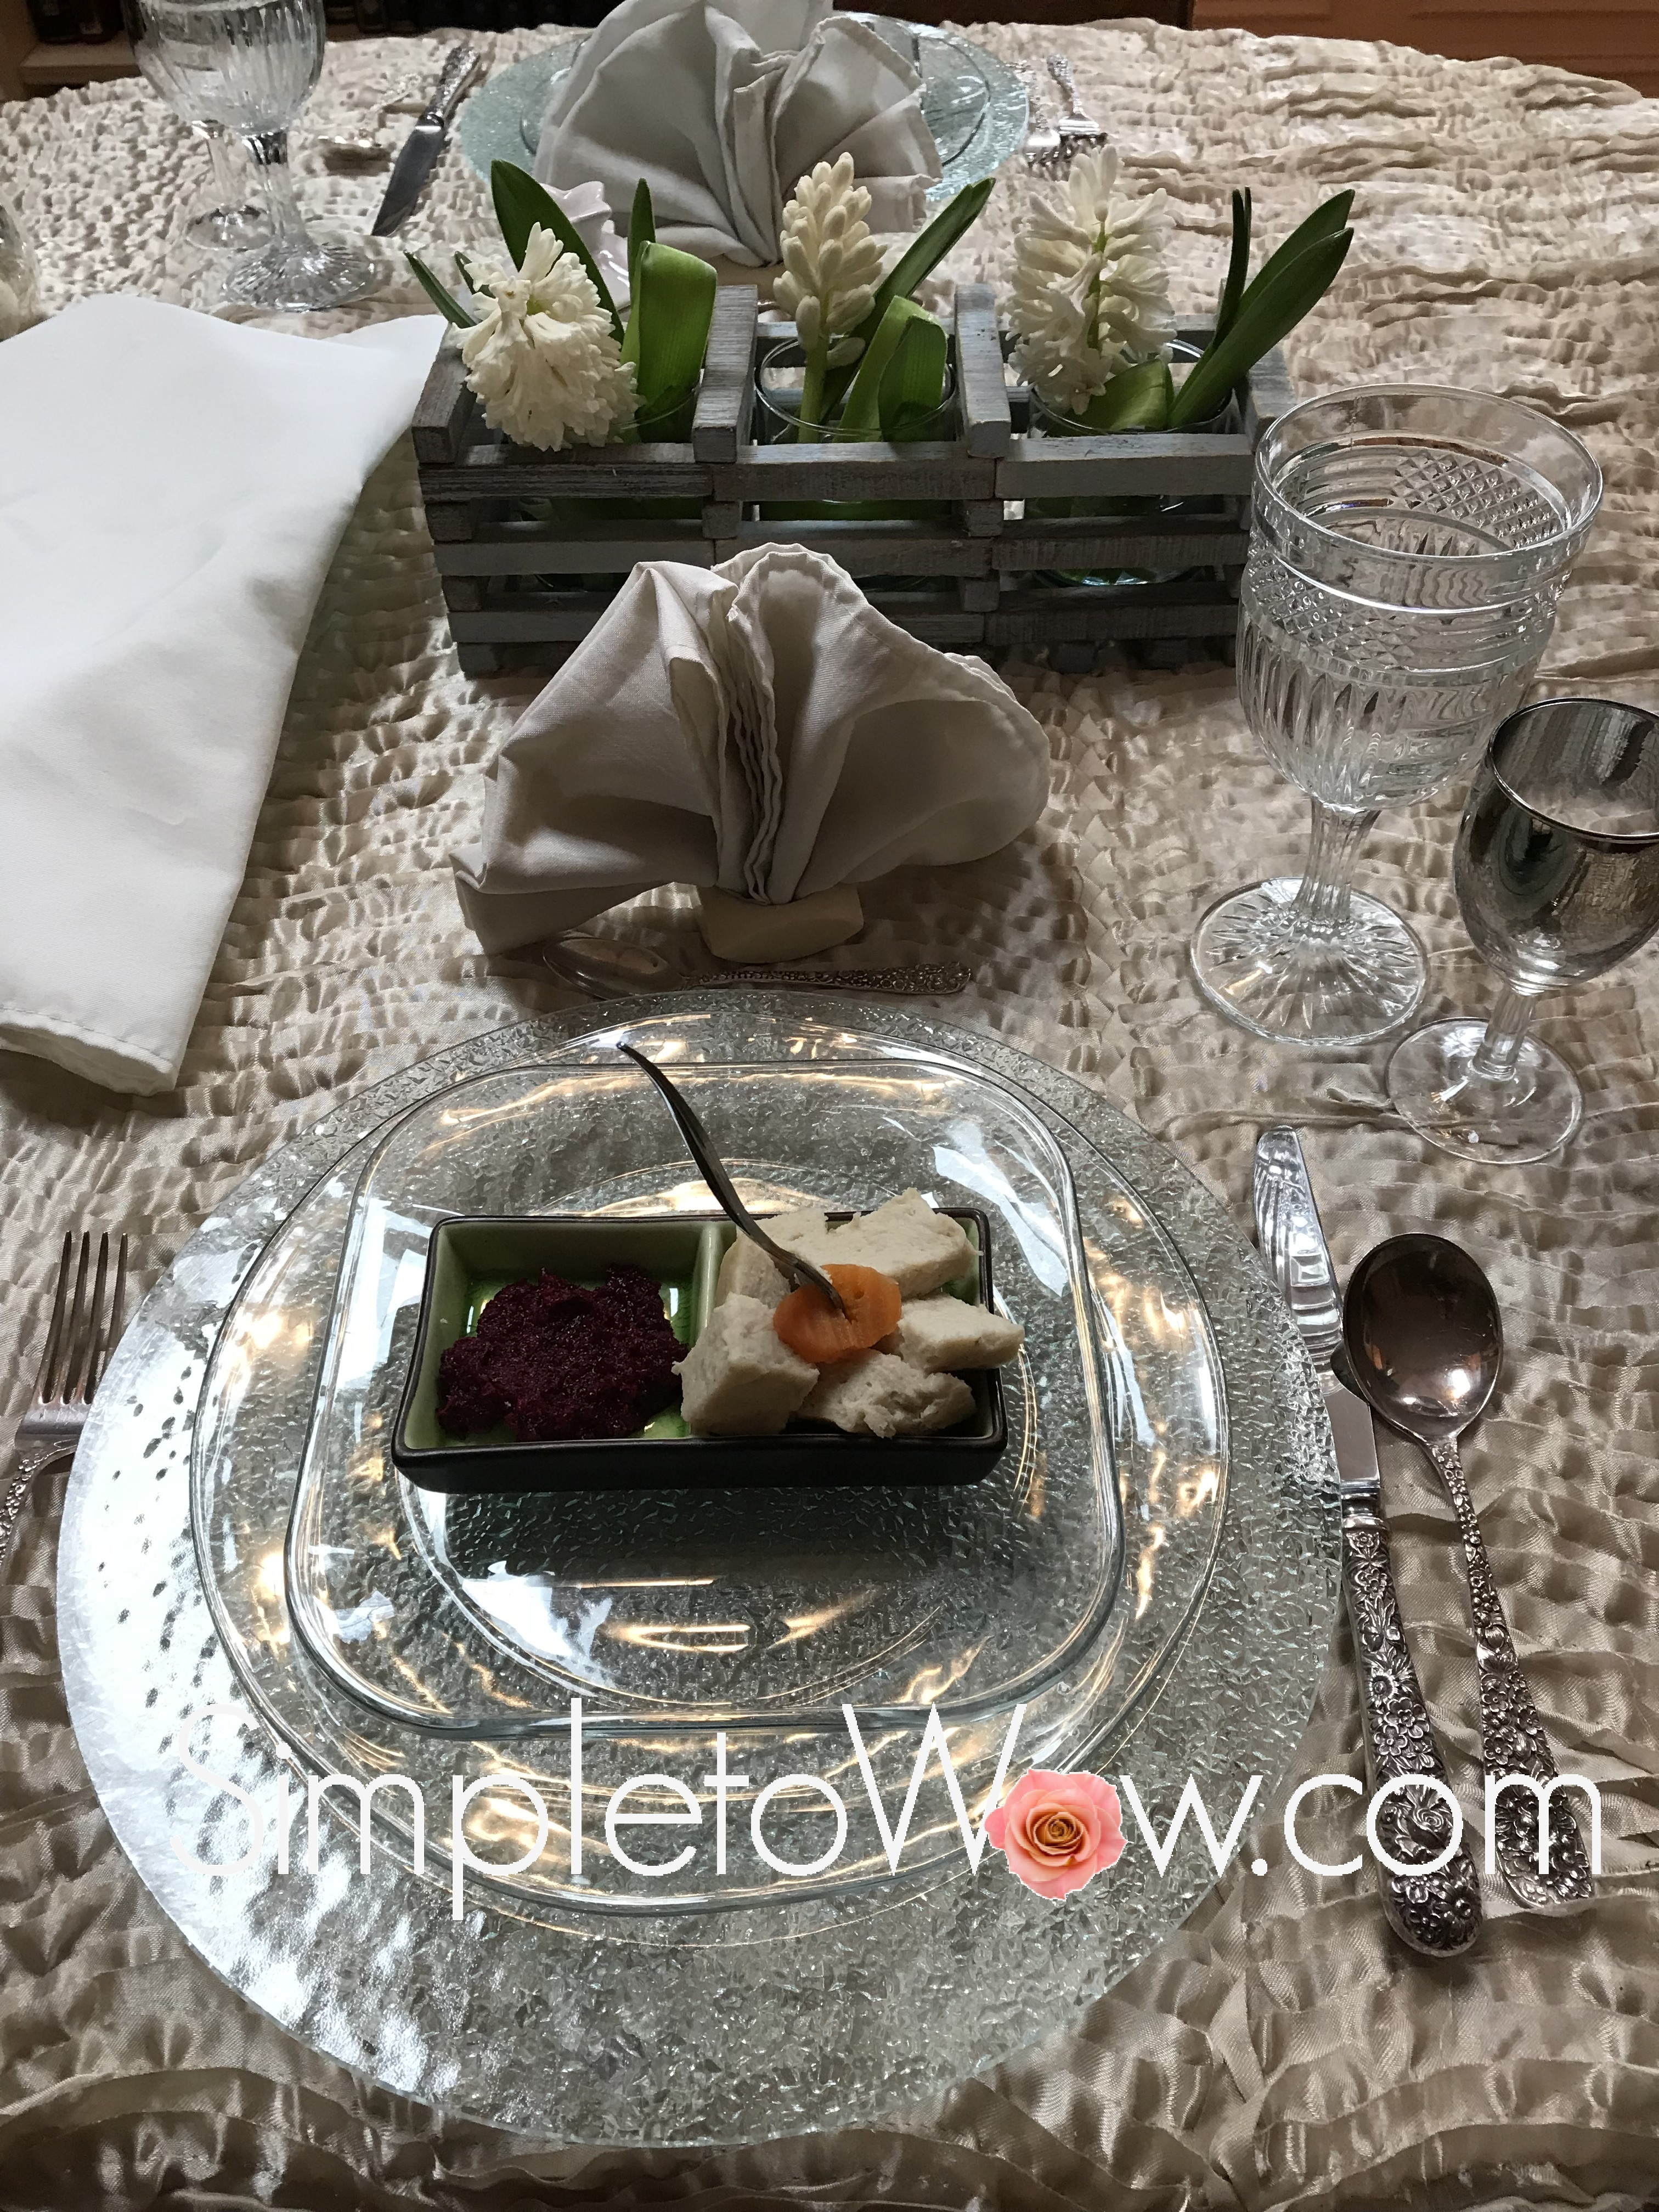 Shabbos Table Tip Napkins That Stand for Kiddush & Shabbos Table Tip: Napkins That Stand for Kiddush   simple to wow